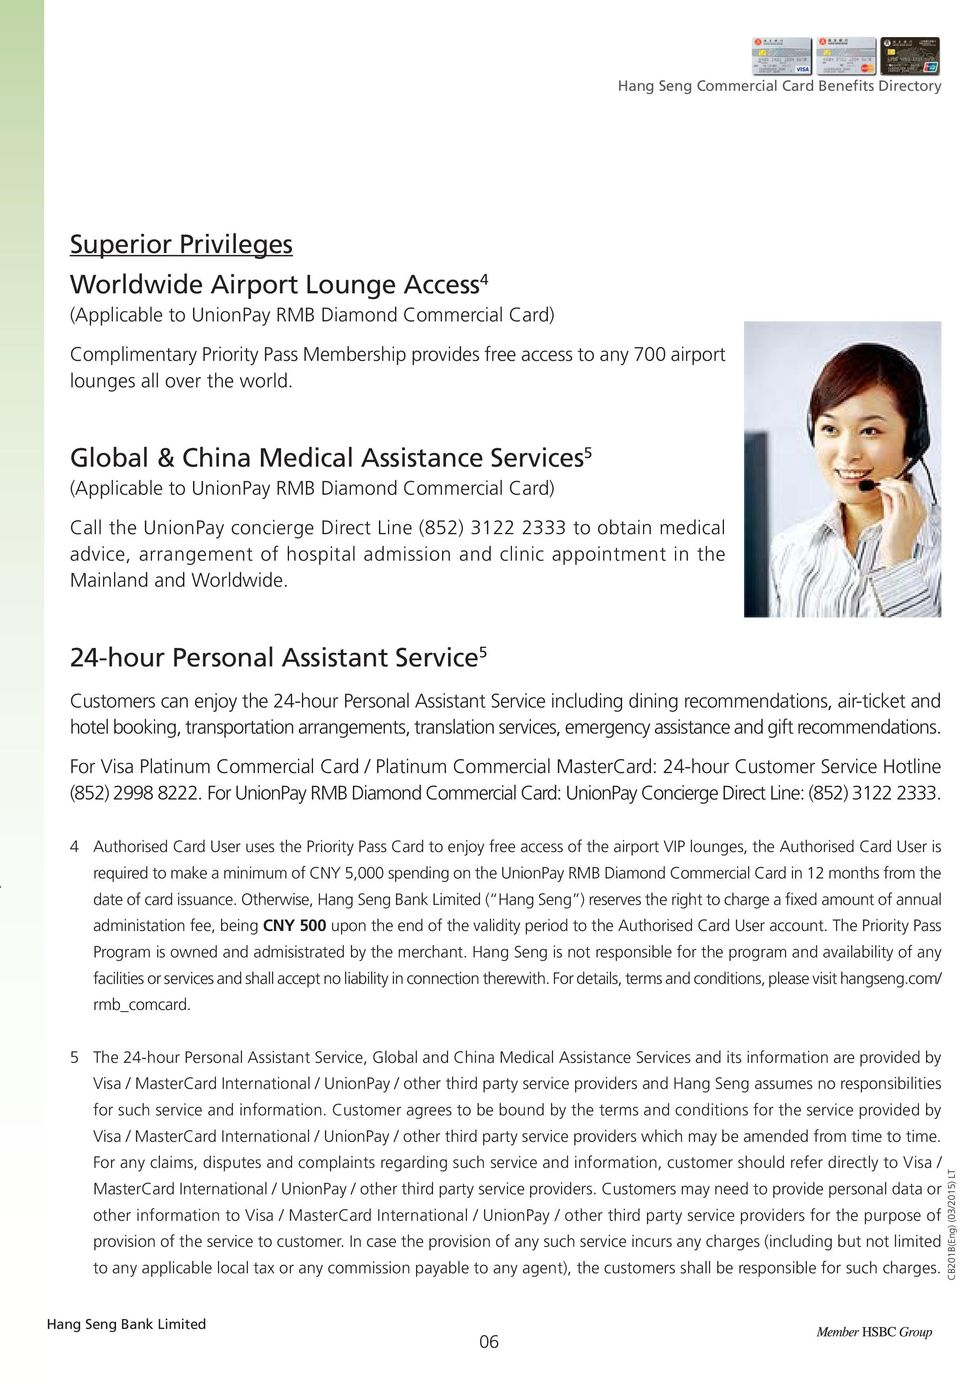 Global & China Medical Assistance Services 5 (Applicable to UnionPay RMB Diamond Commercial Card) Call the UnionPay concierge Direct Line (852) 3122 2333 to obtain medical advice, arrangement of